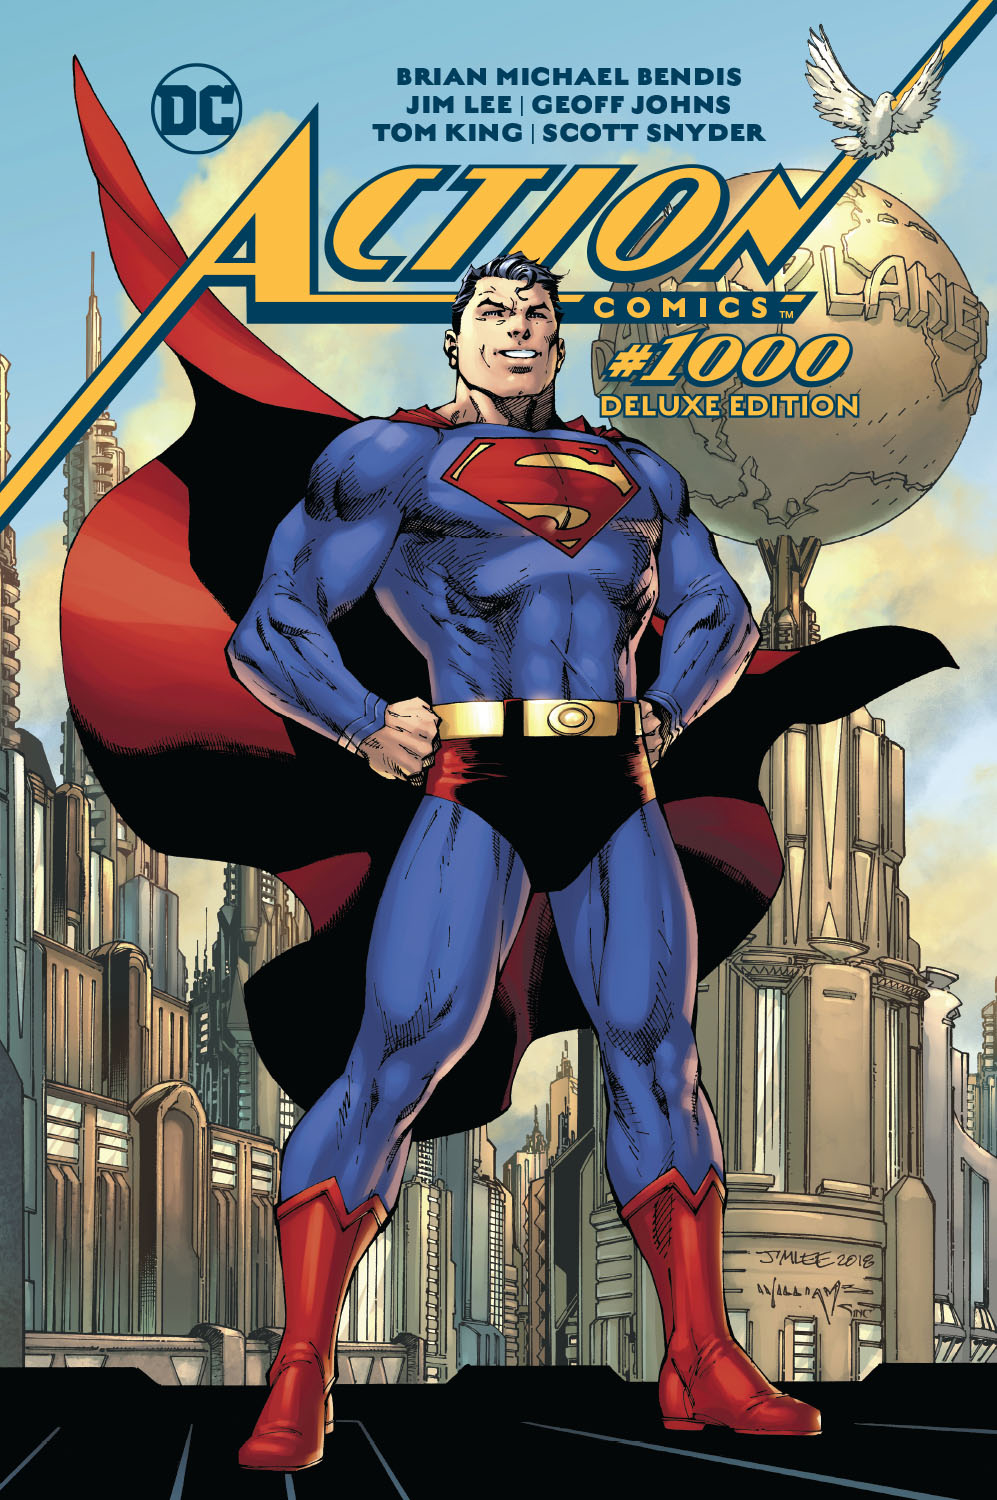 ACTION COMICS #1000 THE DELUXE EDITION HC